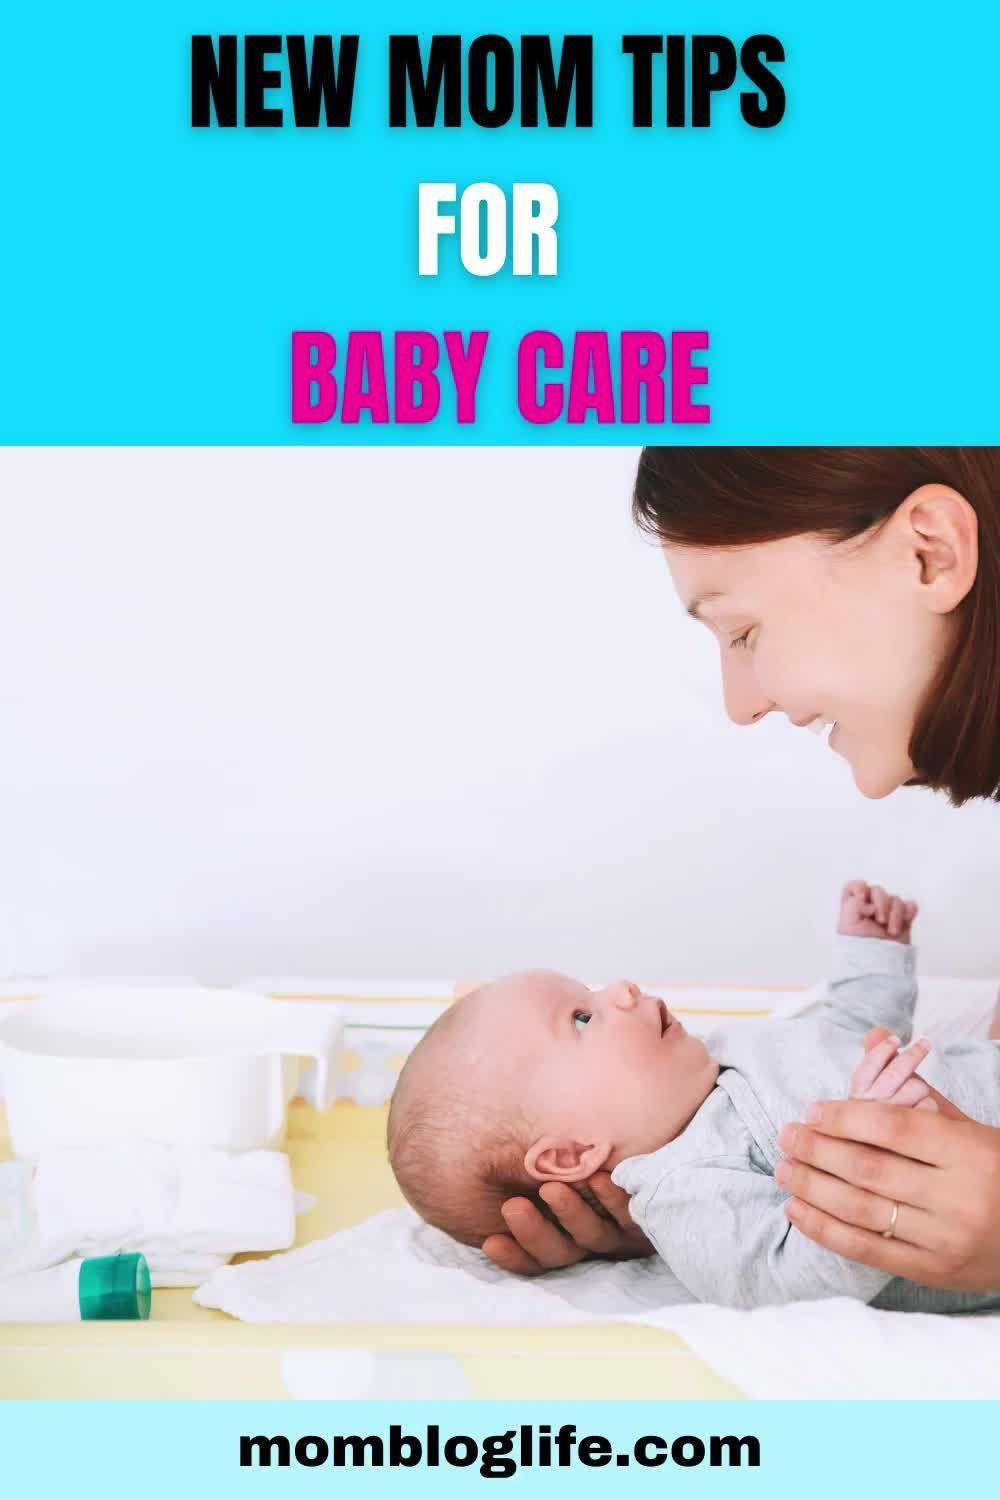 The Ultimate Baby Care Tips for New Moms